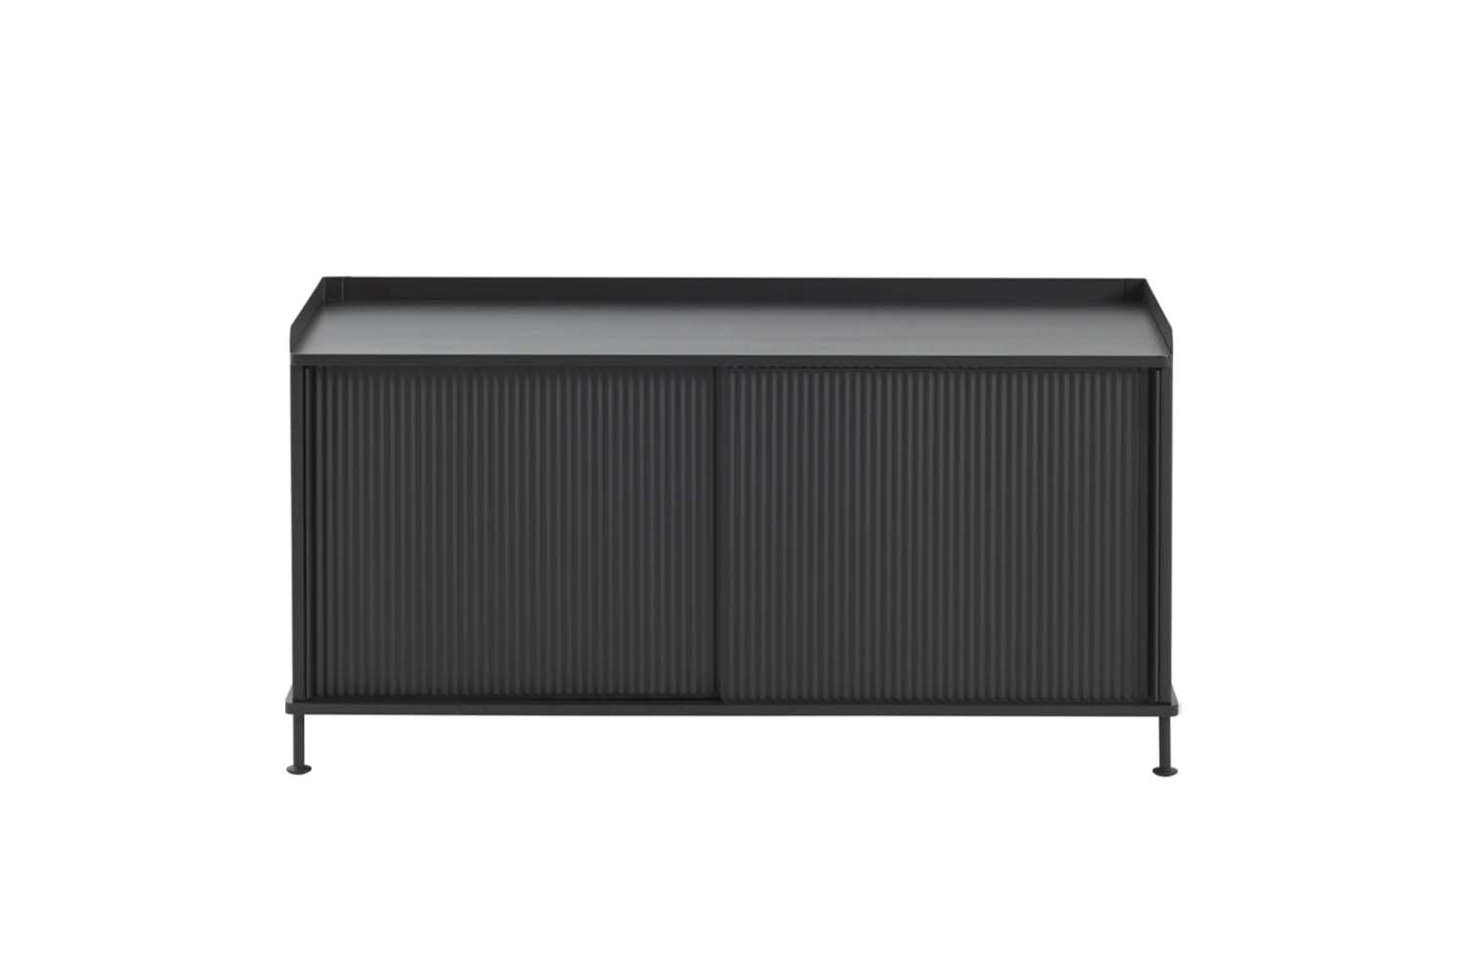 The Muuto Enfold Sideboard Low comes in black, oak/grey, and oak/dusty green for $